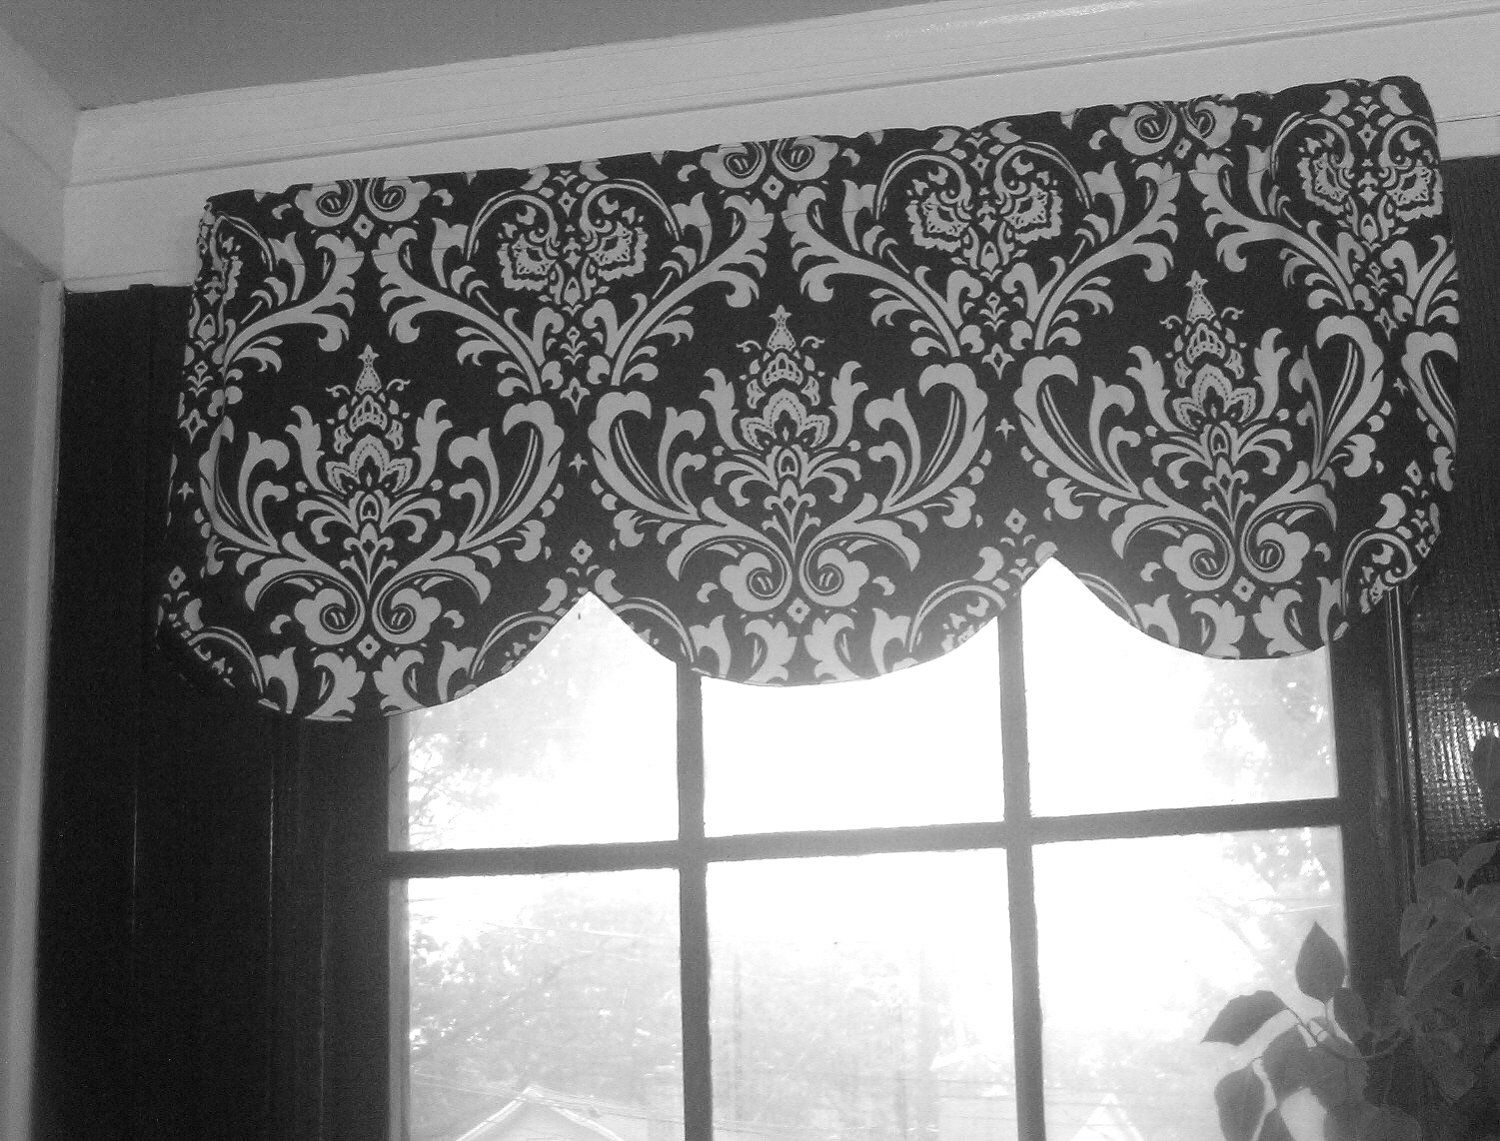 Window Curtain Valance Damask Black And White 42 X 16 Inches